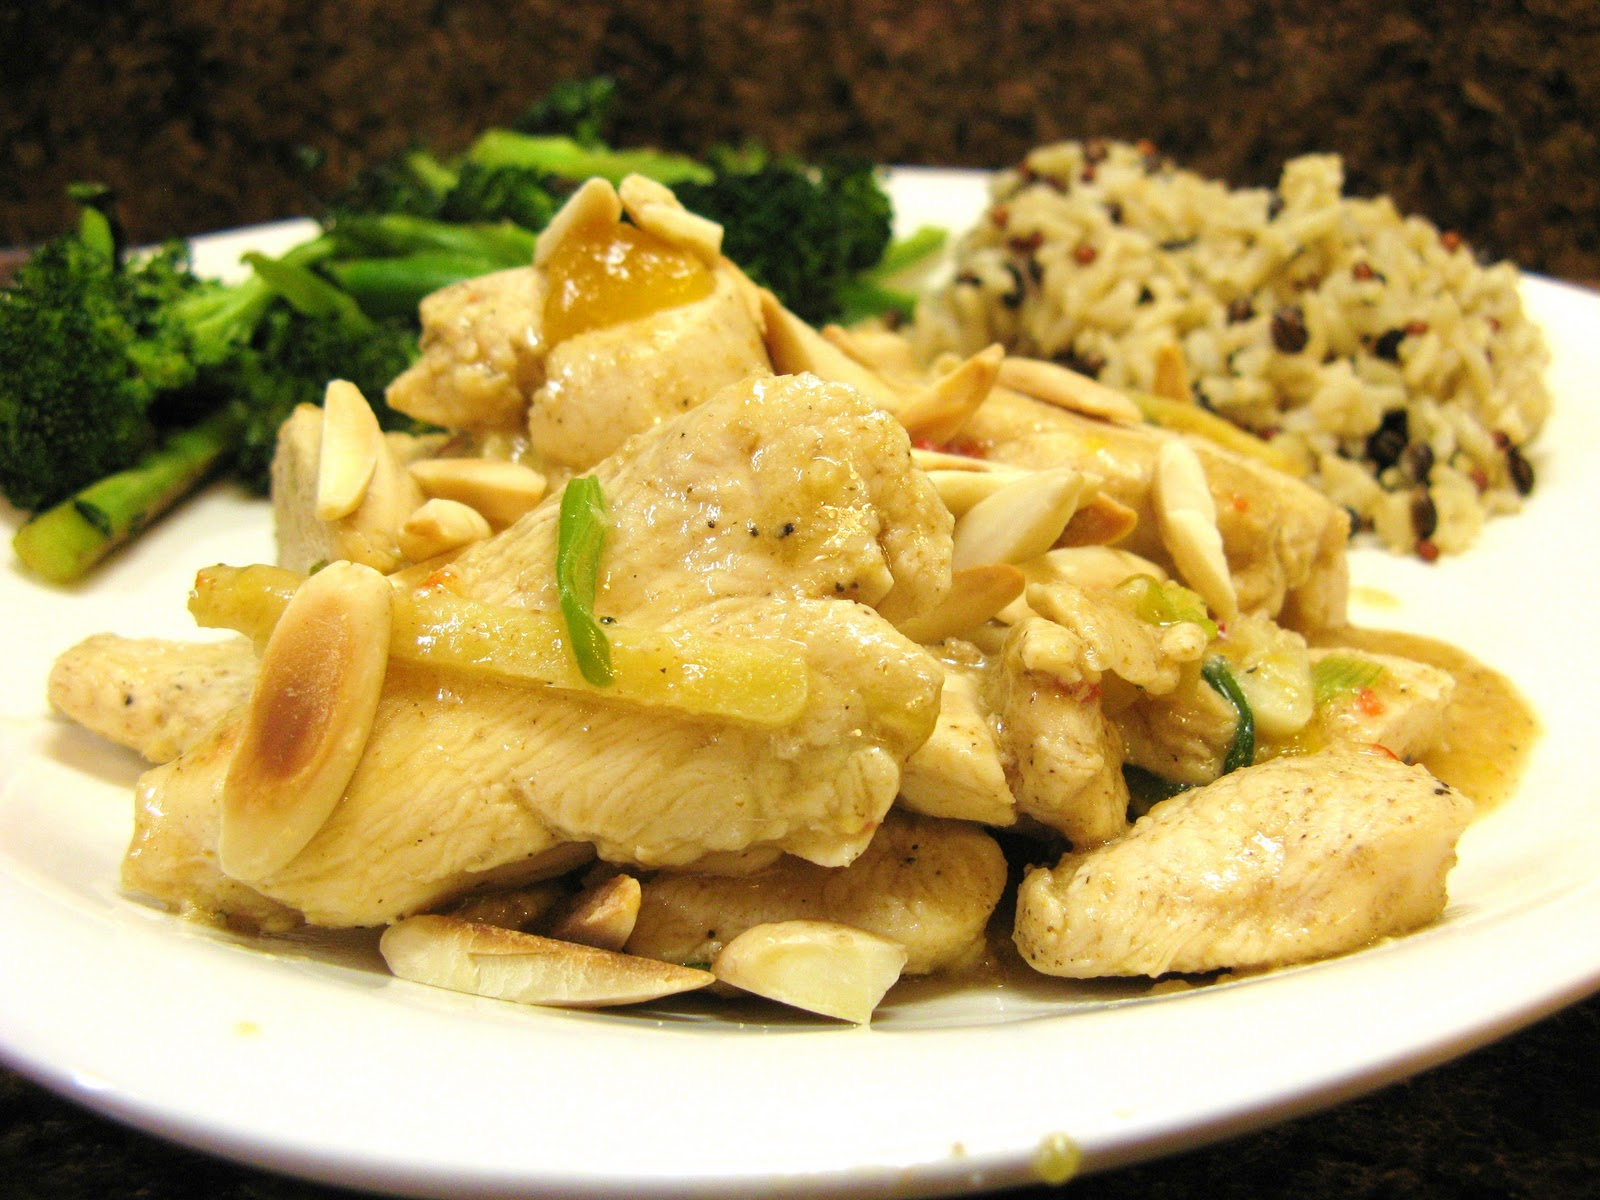 The Well-Fed Newlyweds: Mango Ginger Chicken with Almonds